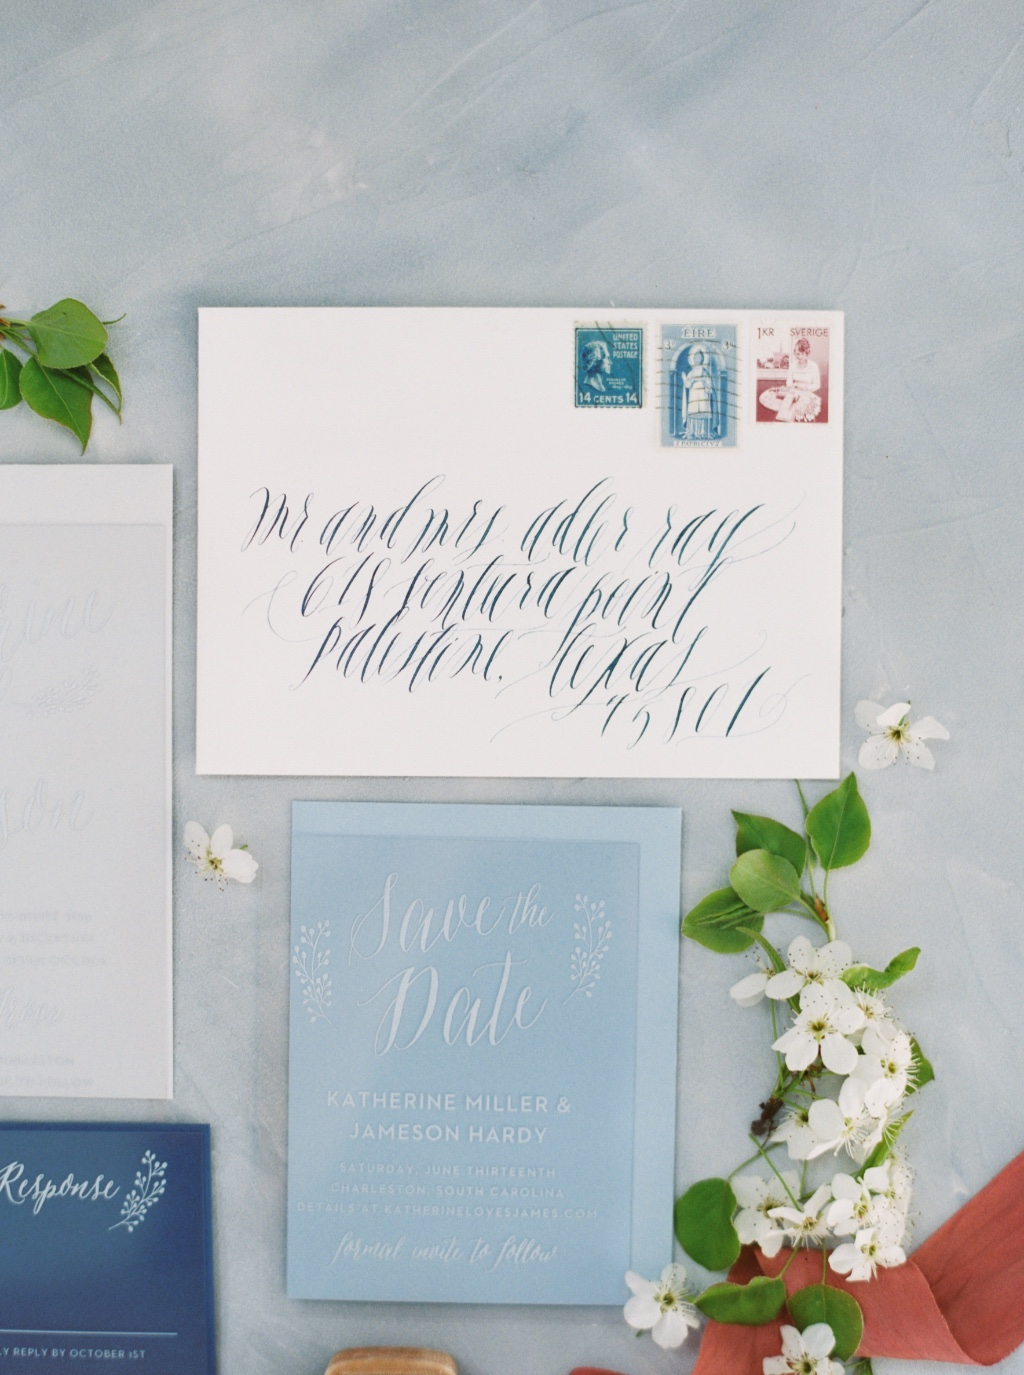 Don't forget to save the date and even better - pair that save the date with a pretty calligraphy addressed envelope for an extra special